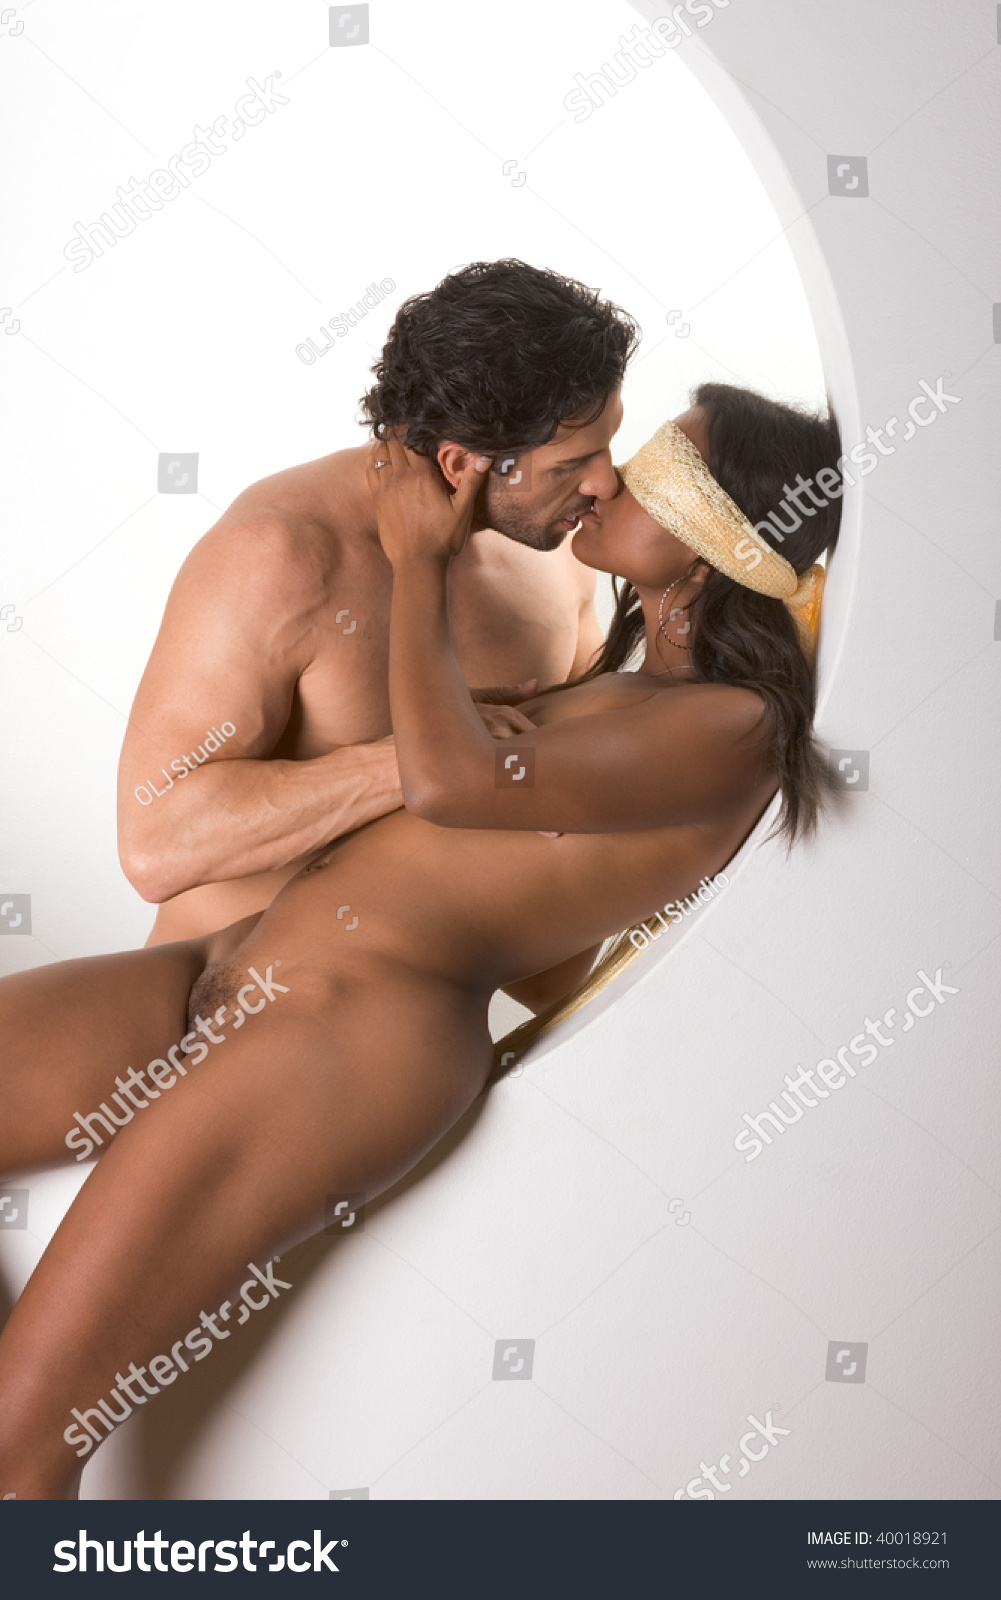 Nude pictures of loving couples